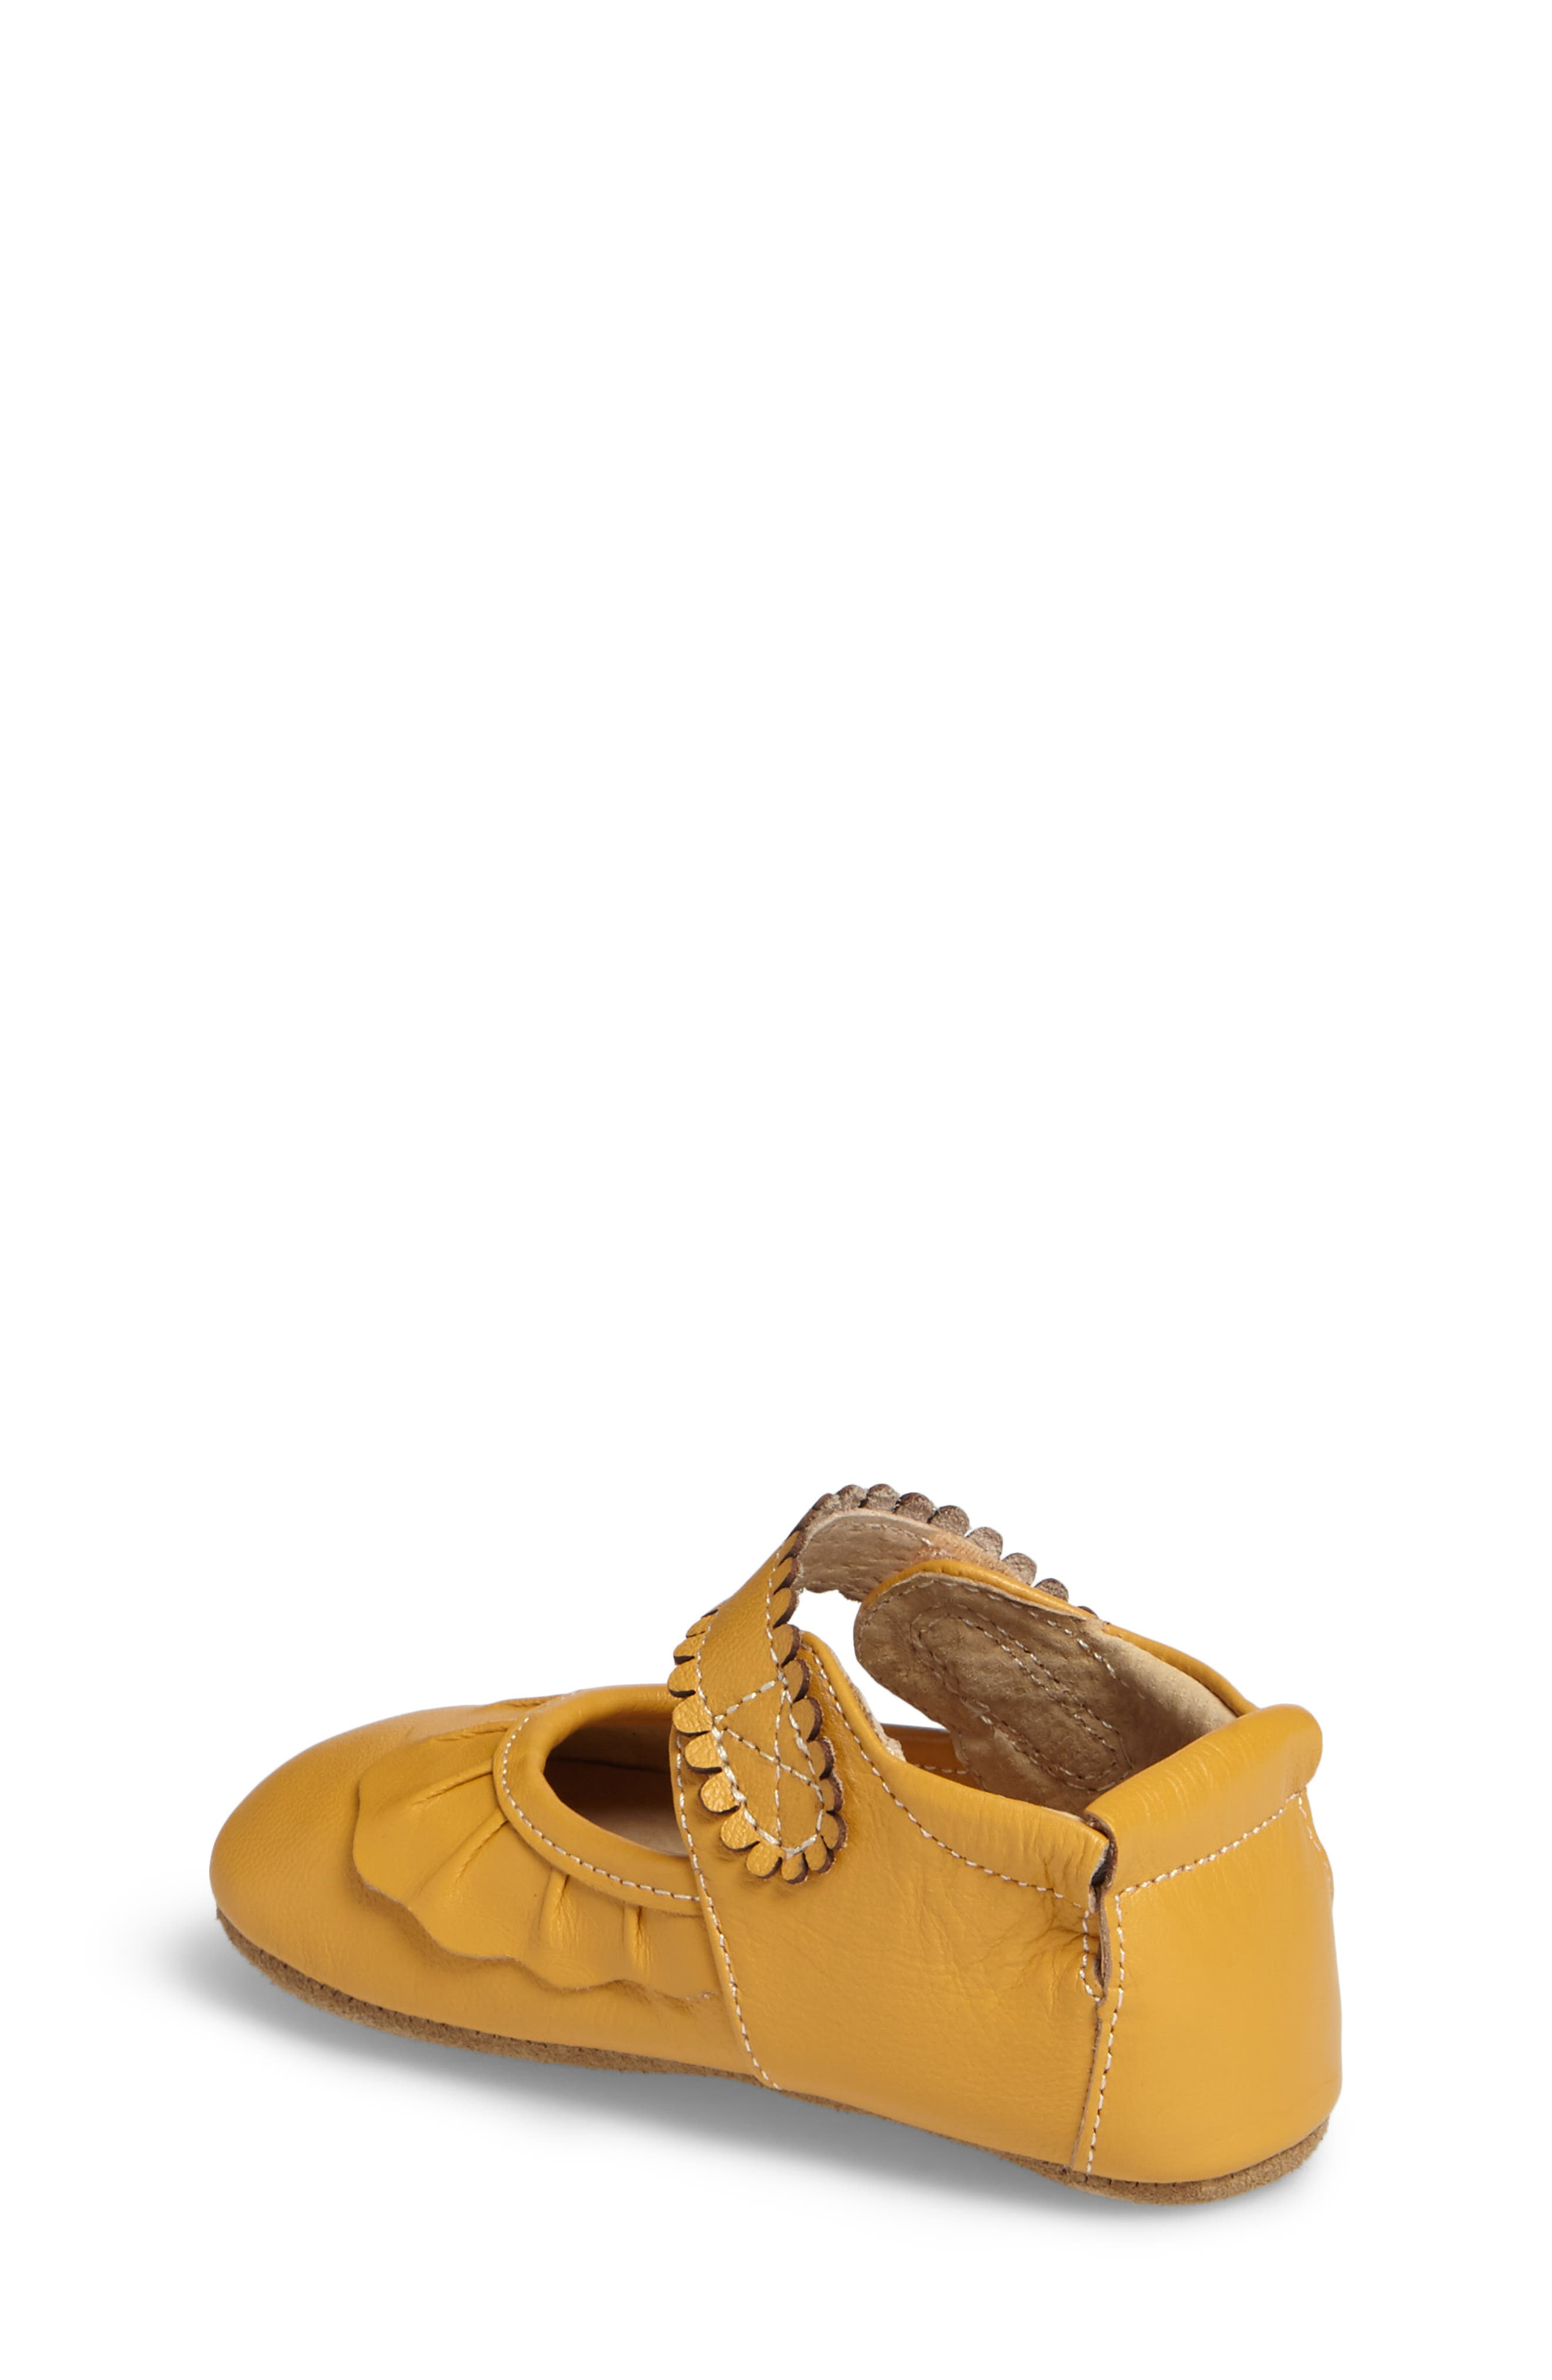 'Ruche' Mary Jane Crib Shoe,                             Alternate thumbnail 2, color,                             BUTTERSCOTCH LEATHER